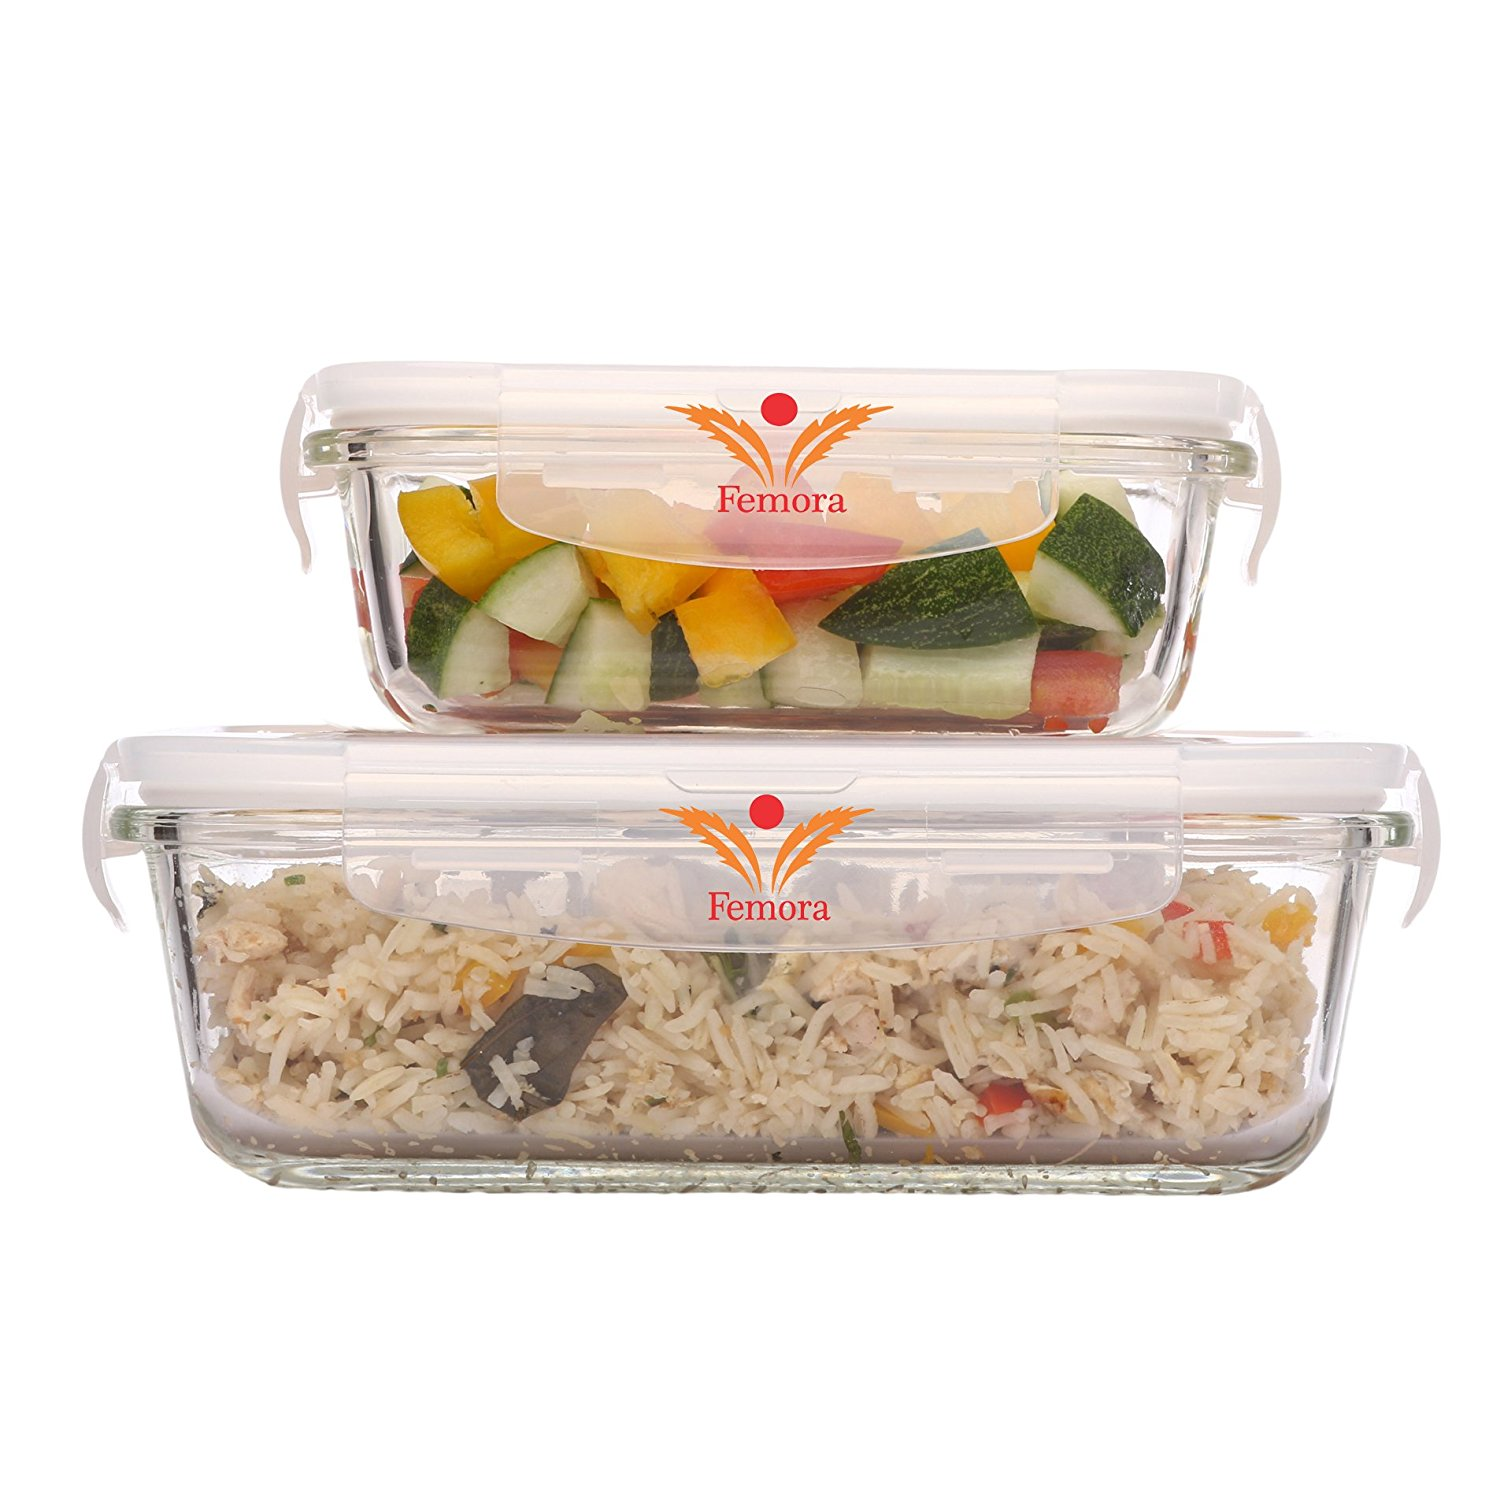 Femora Borosilicate Rectangular Glass Food Storage Container with